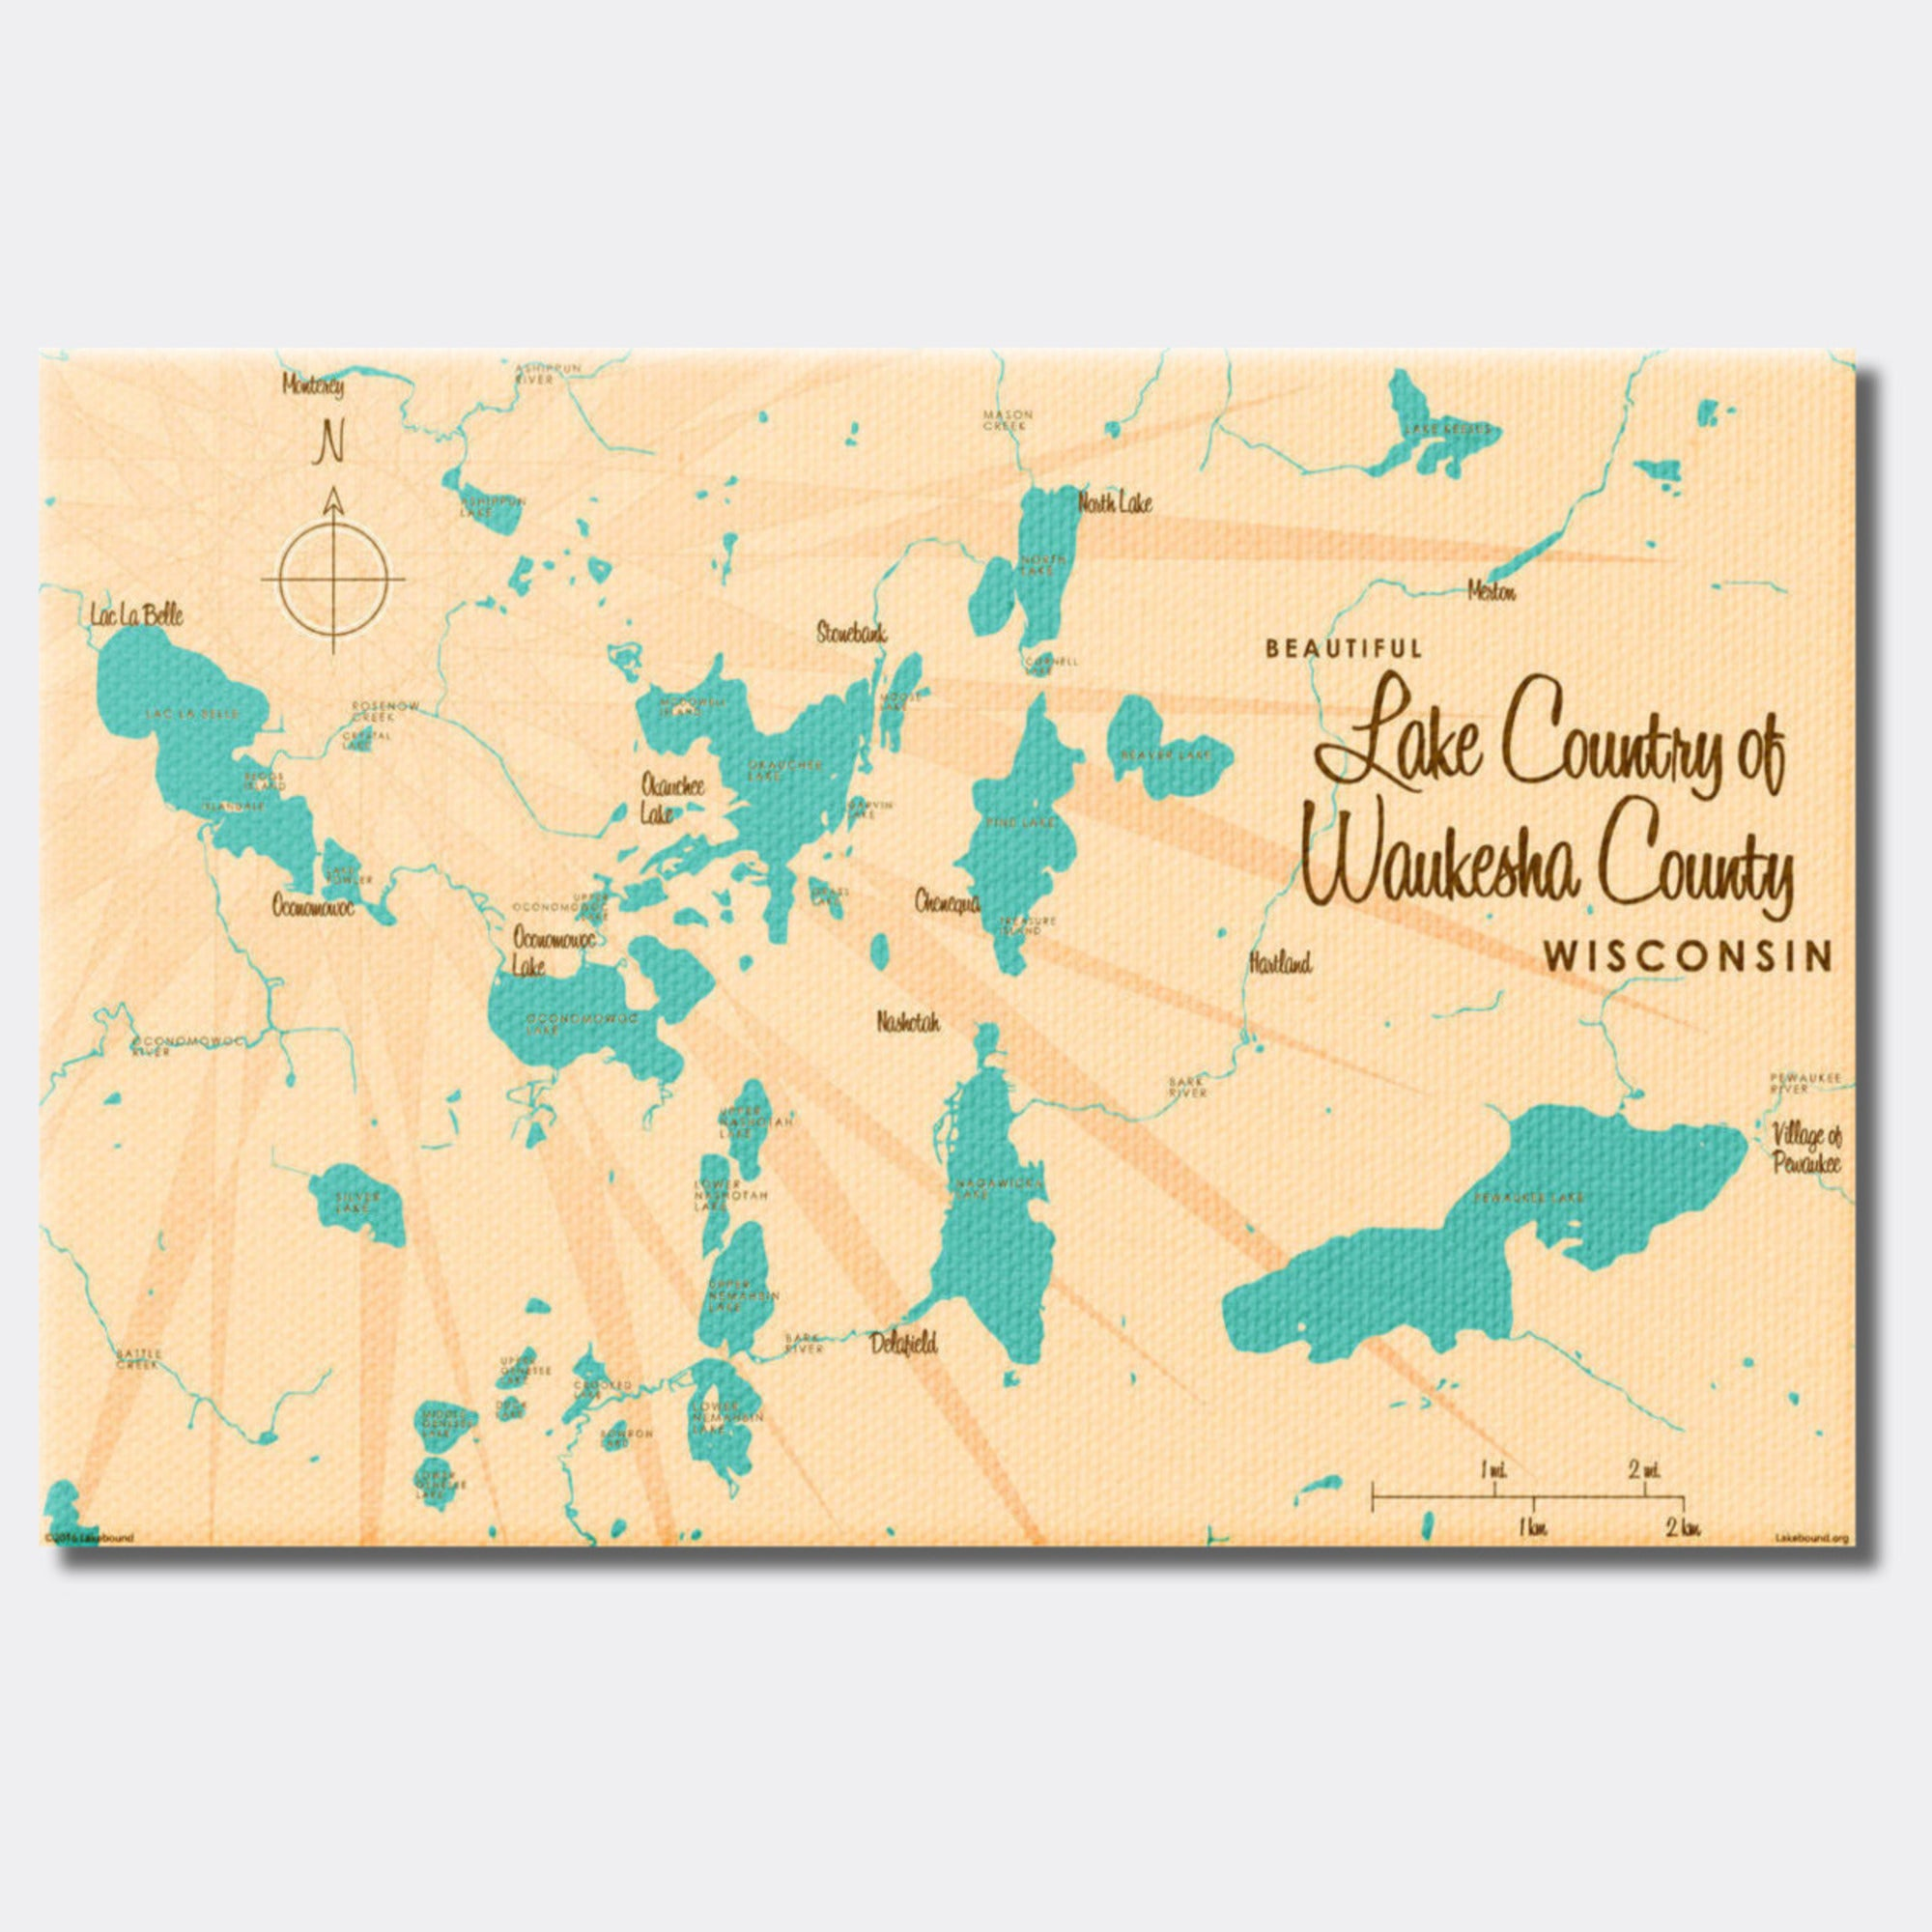 Lake Country Waukesha County Wisconsin, Canvas Print